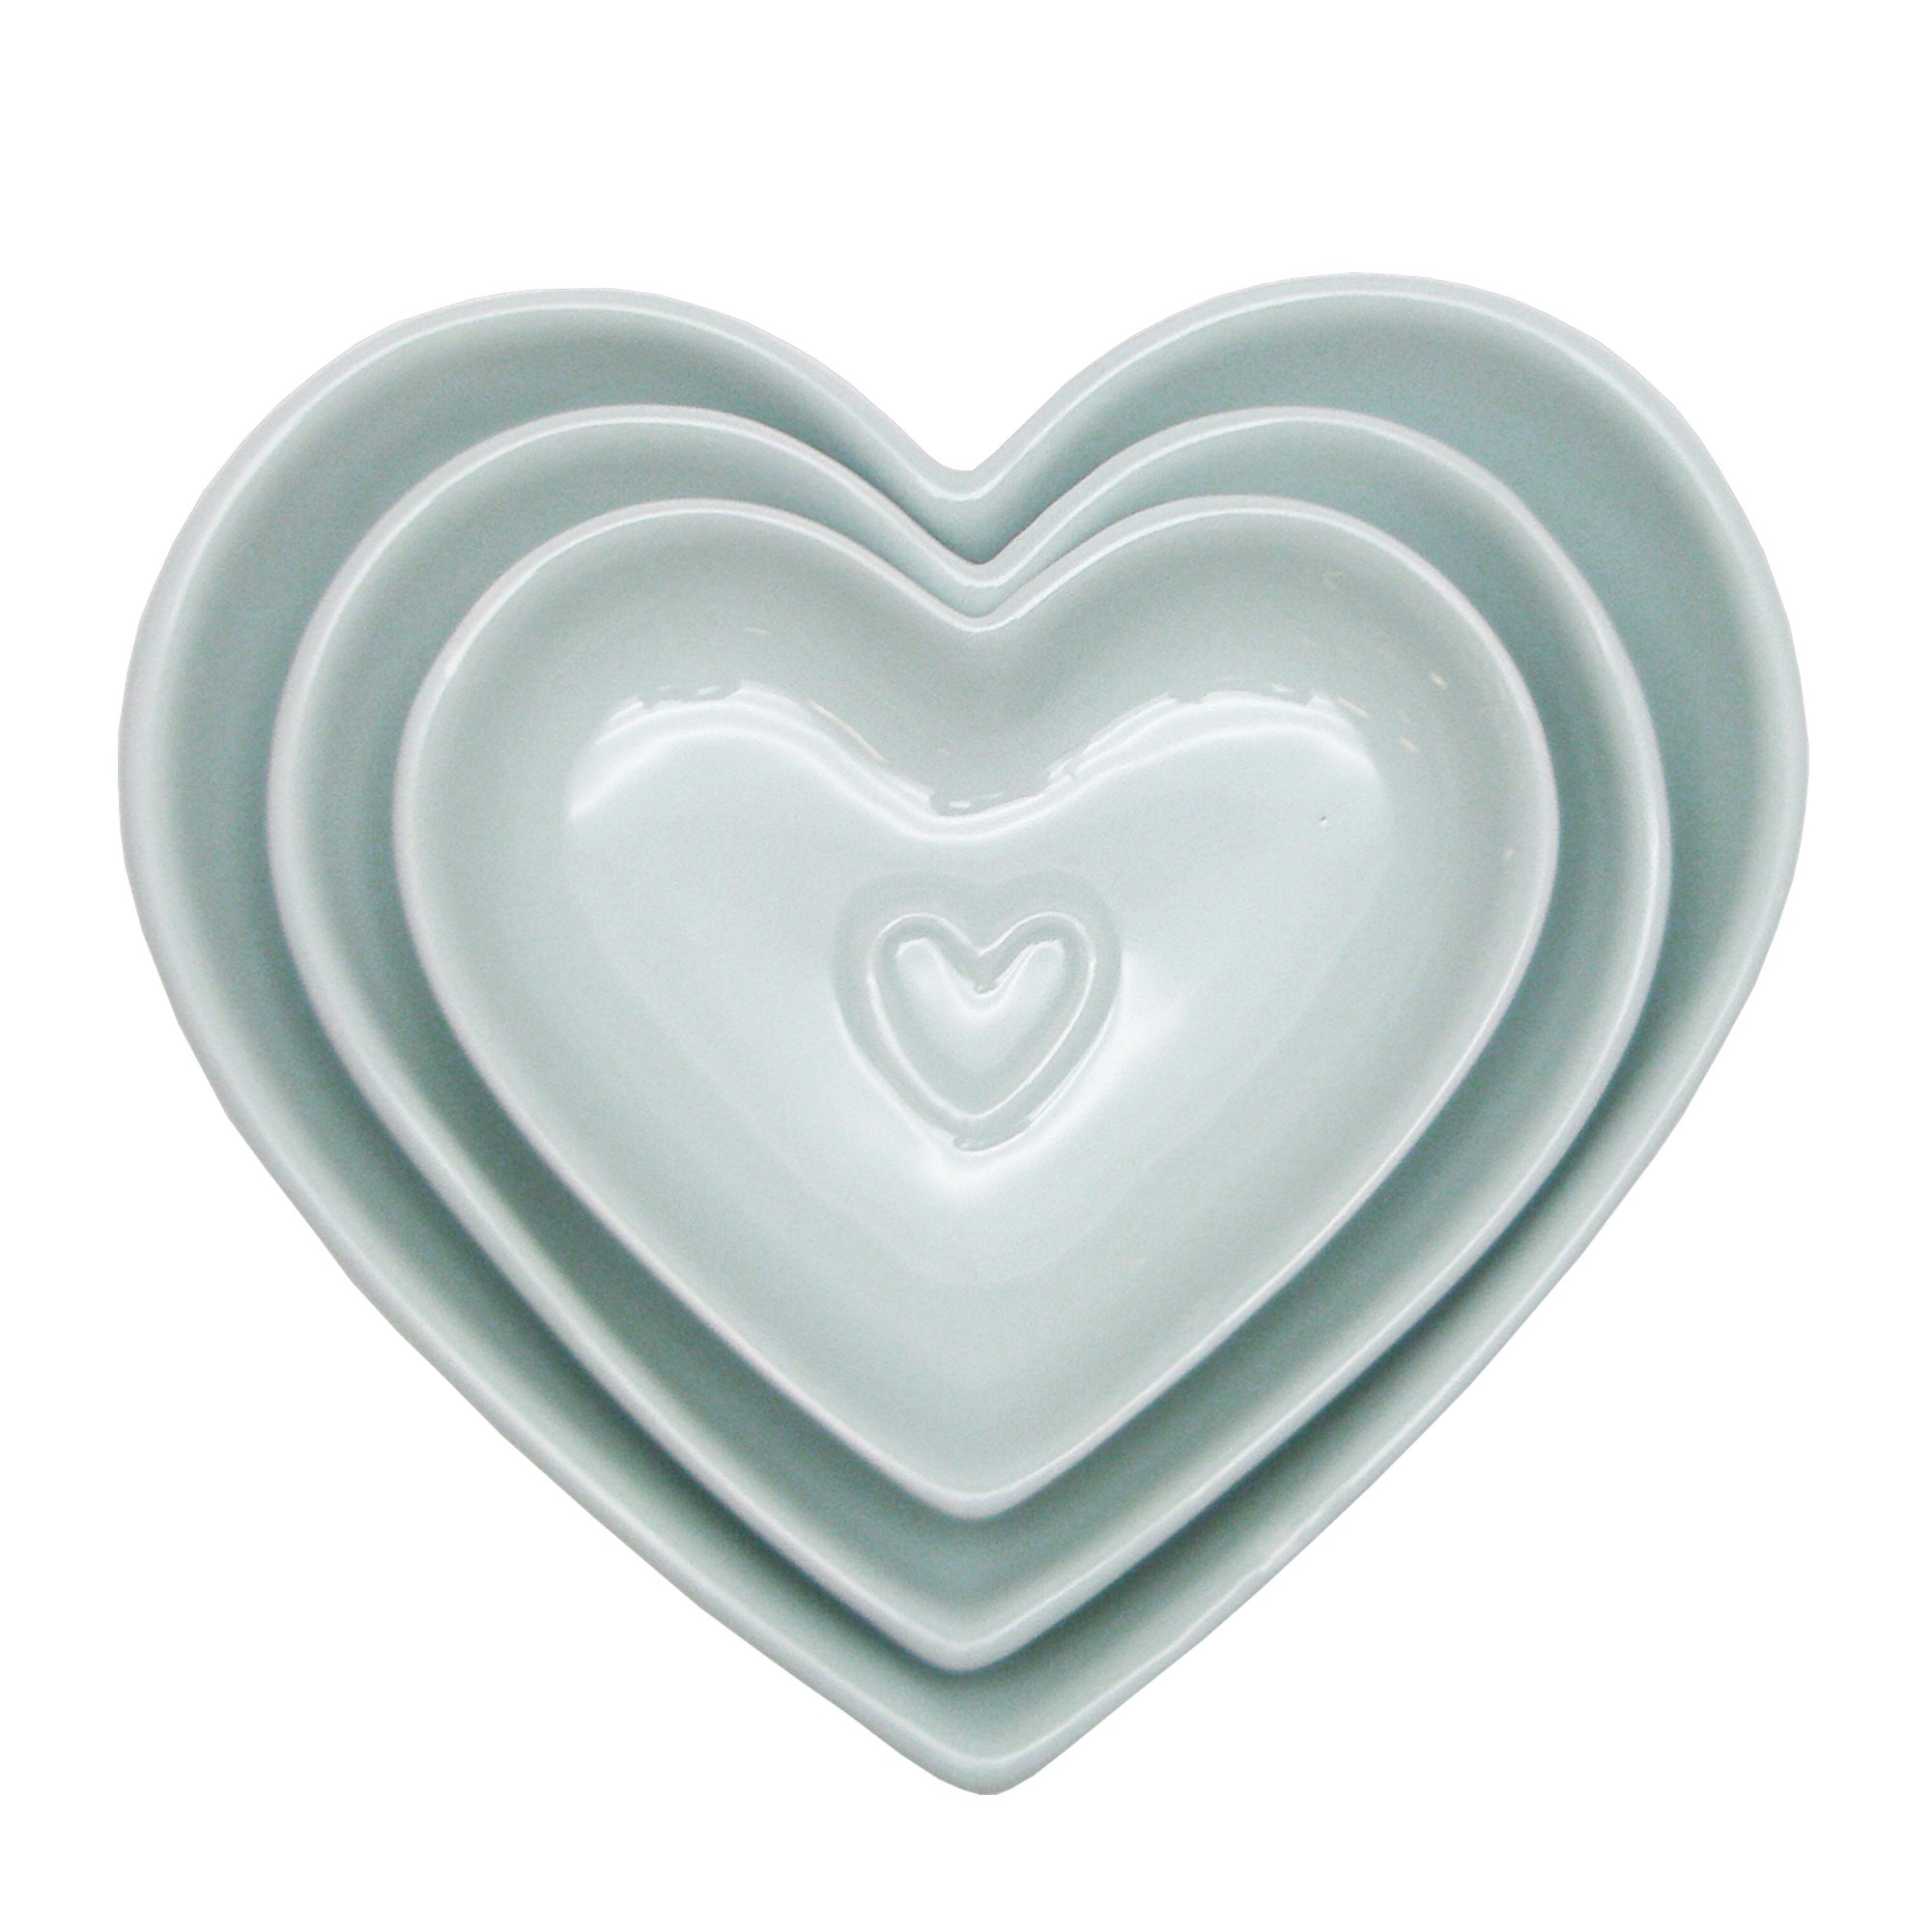 Country Heart DuckEgg Nesting Bowls Duck Egg Blue